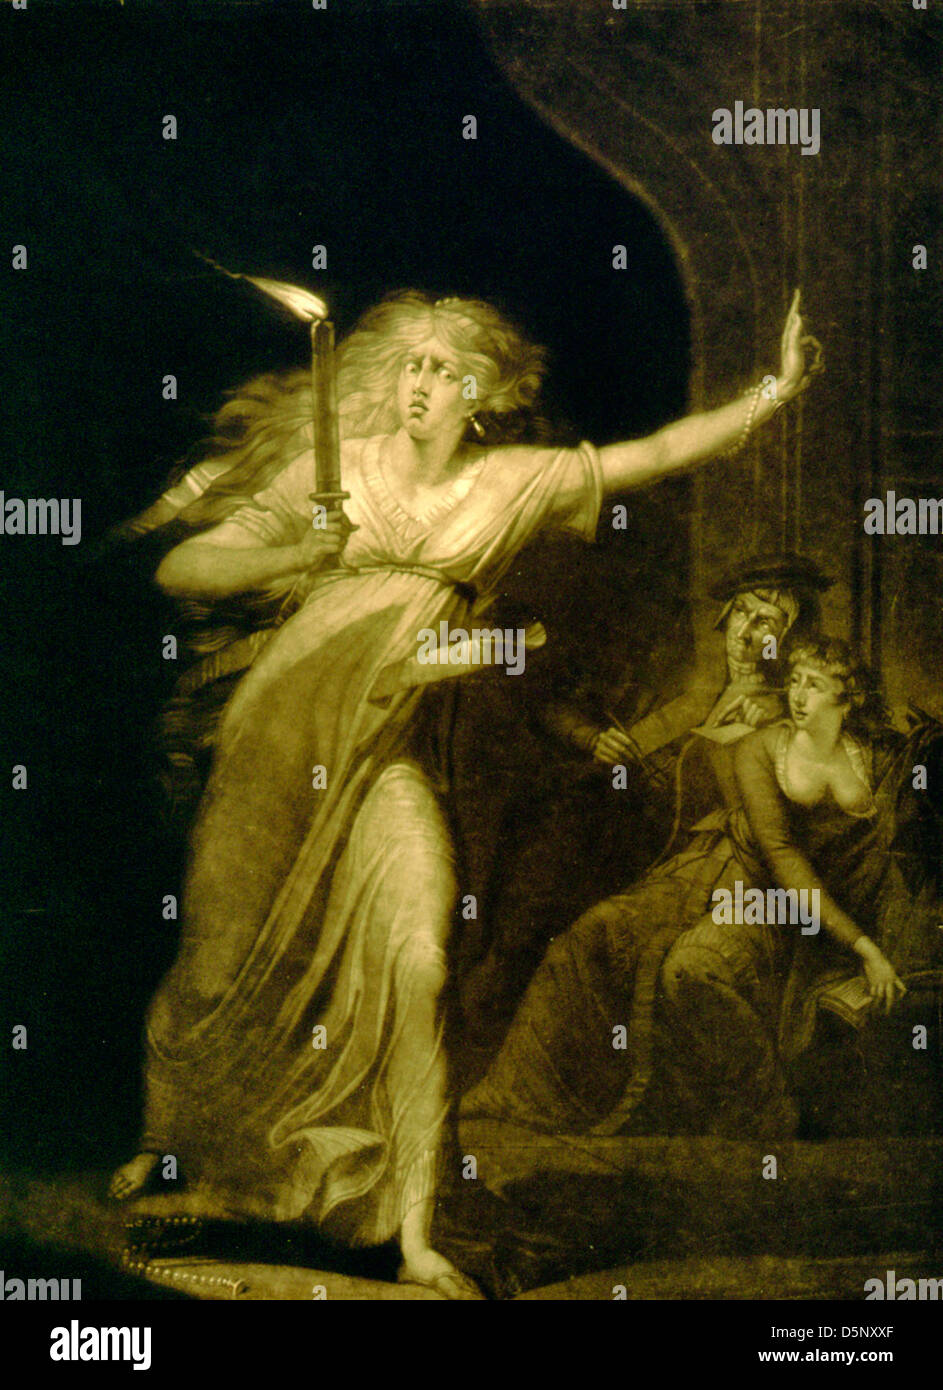 macbeth william shakespeare shakespeare stock photos macbeth lady macbeth walking in her sleep full length view carrying candle a